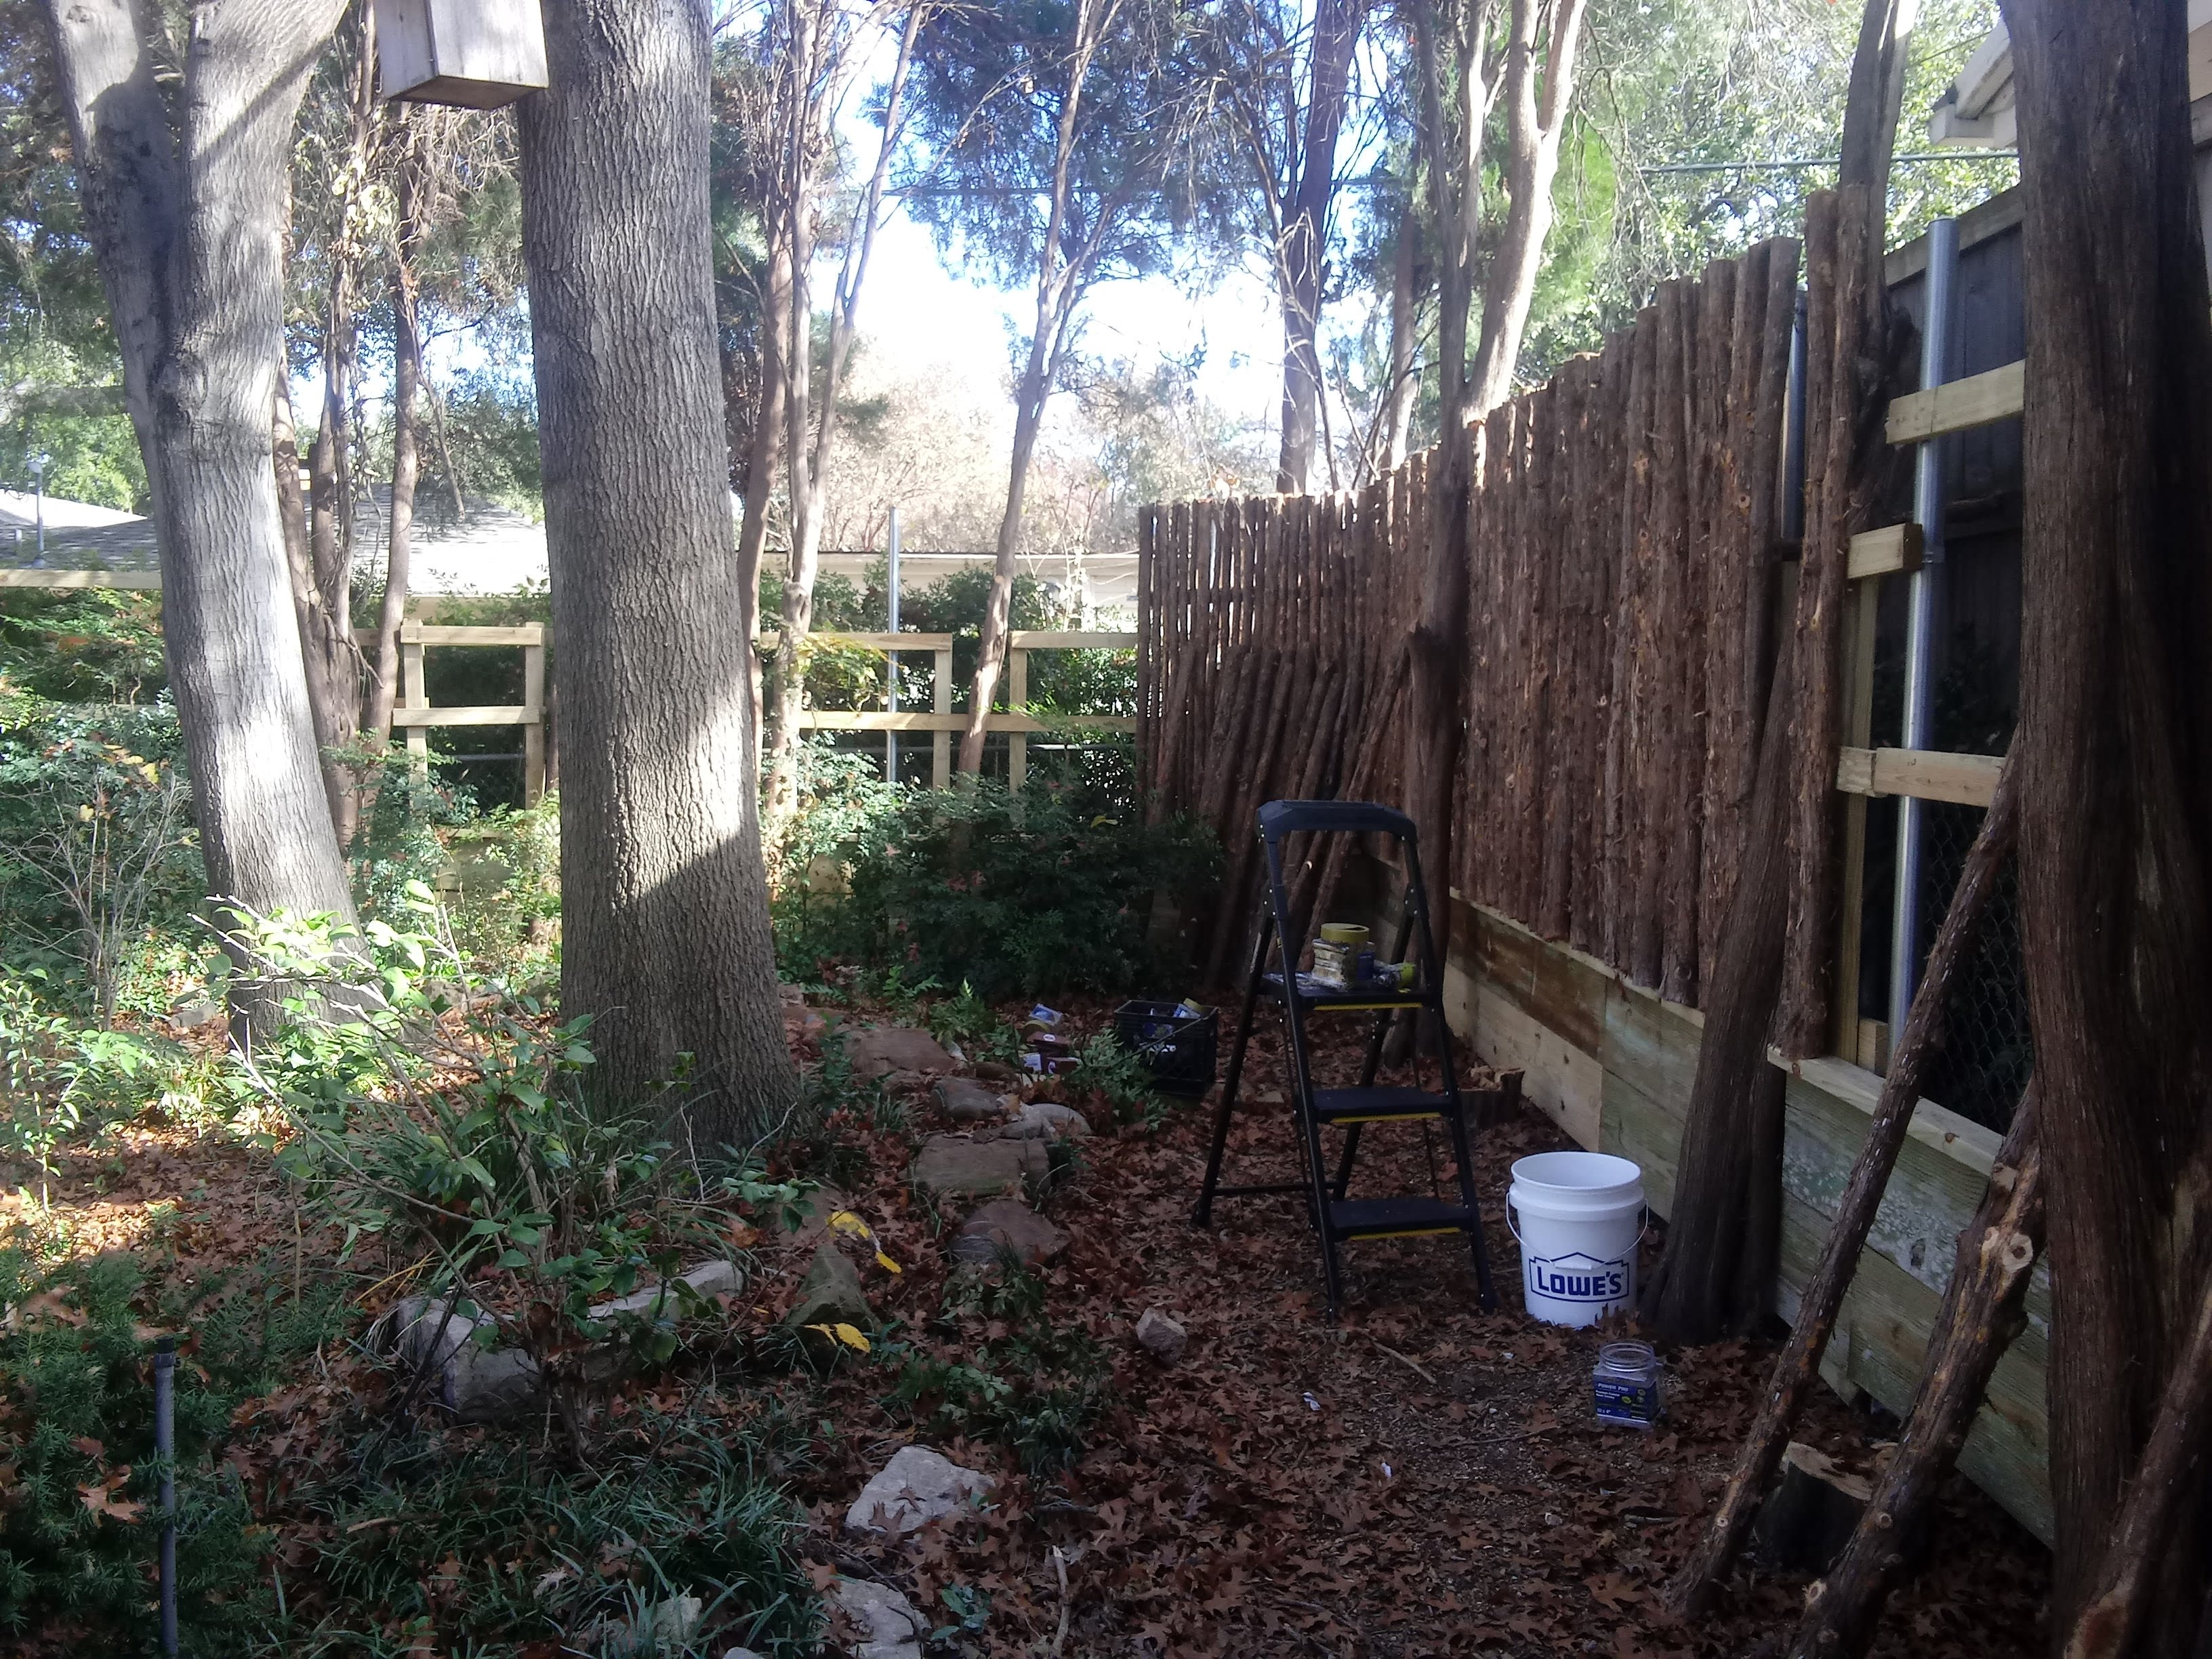 Fence construction and repair